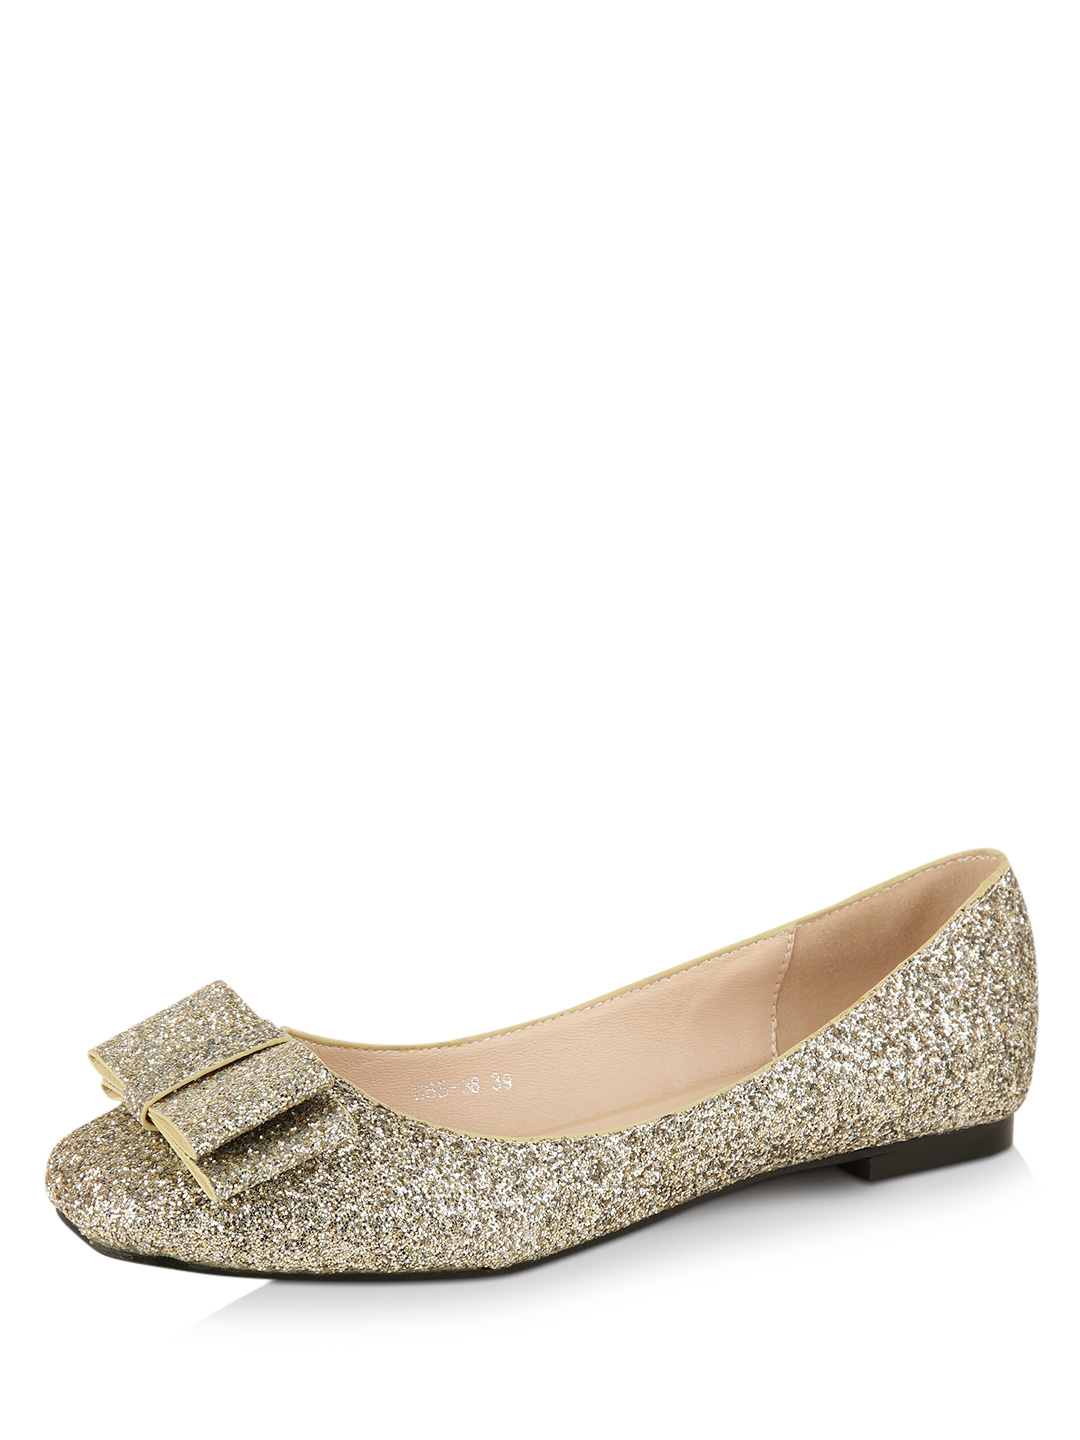 My Foot Couture Gold Oversized Bow Ballerina Flats 1